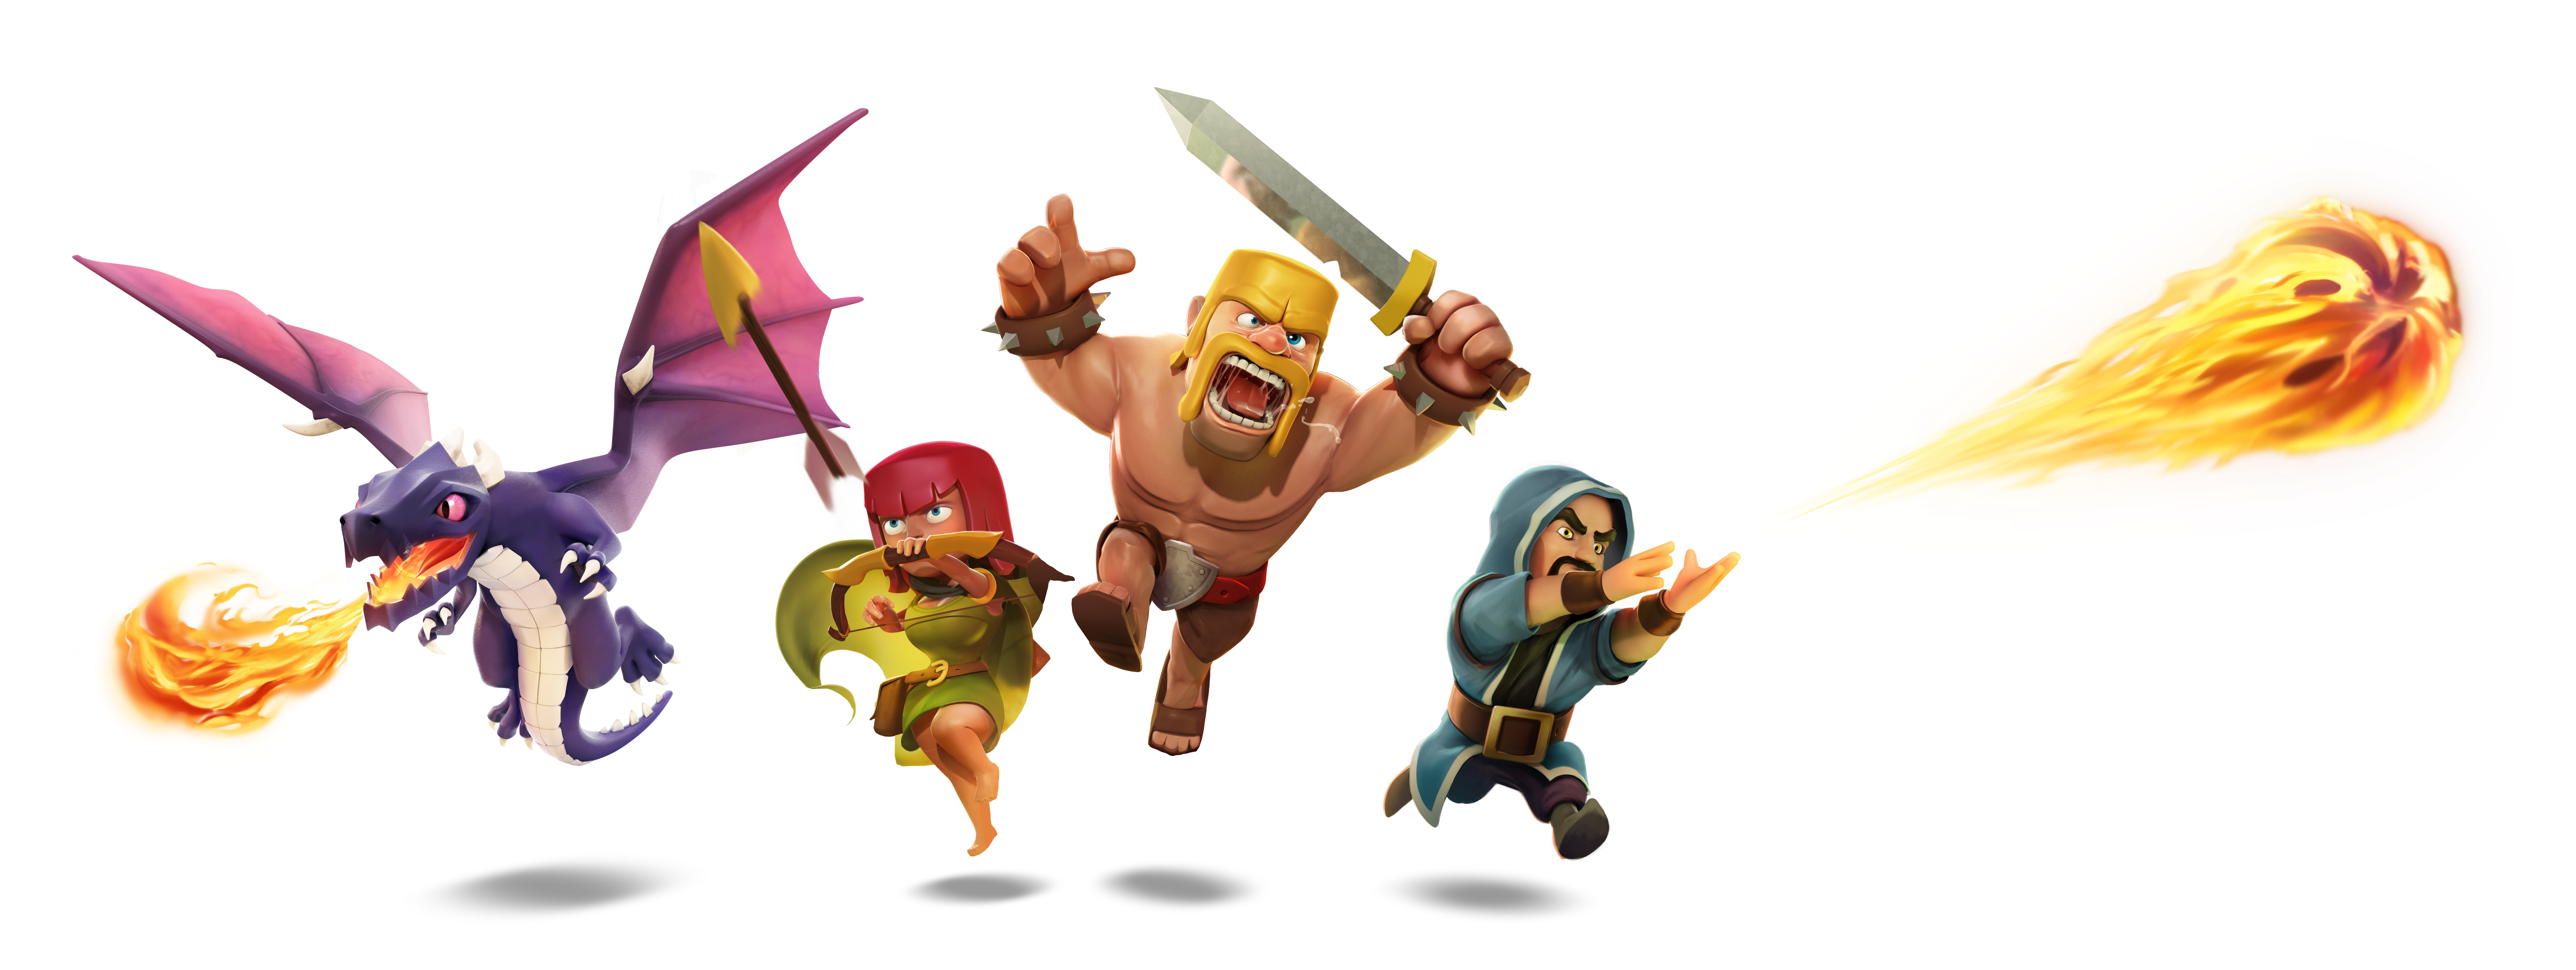 Clash Of Clans PNG - 14788